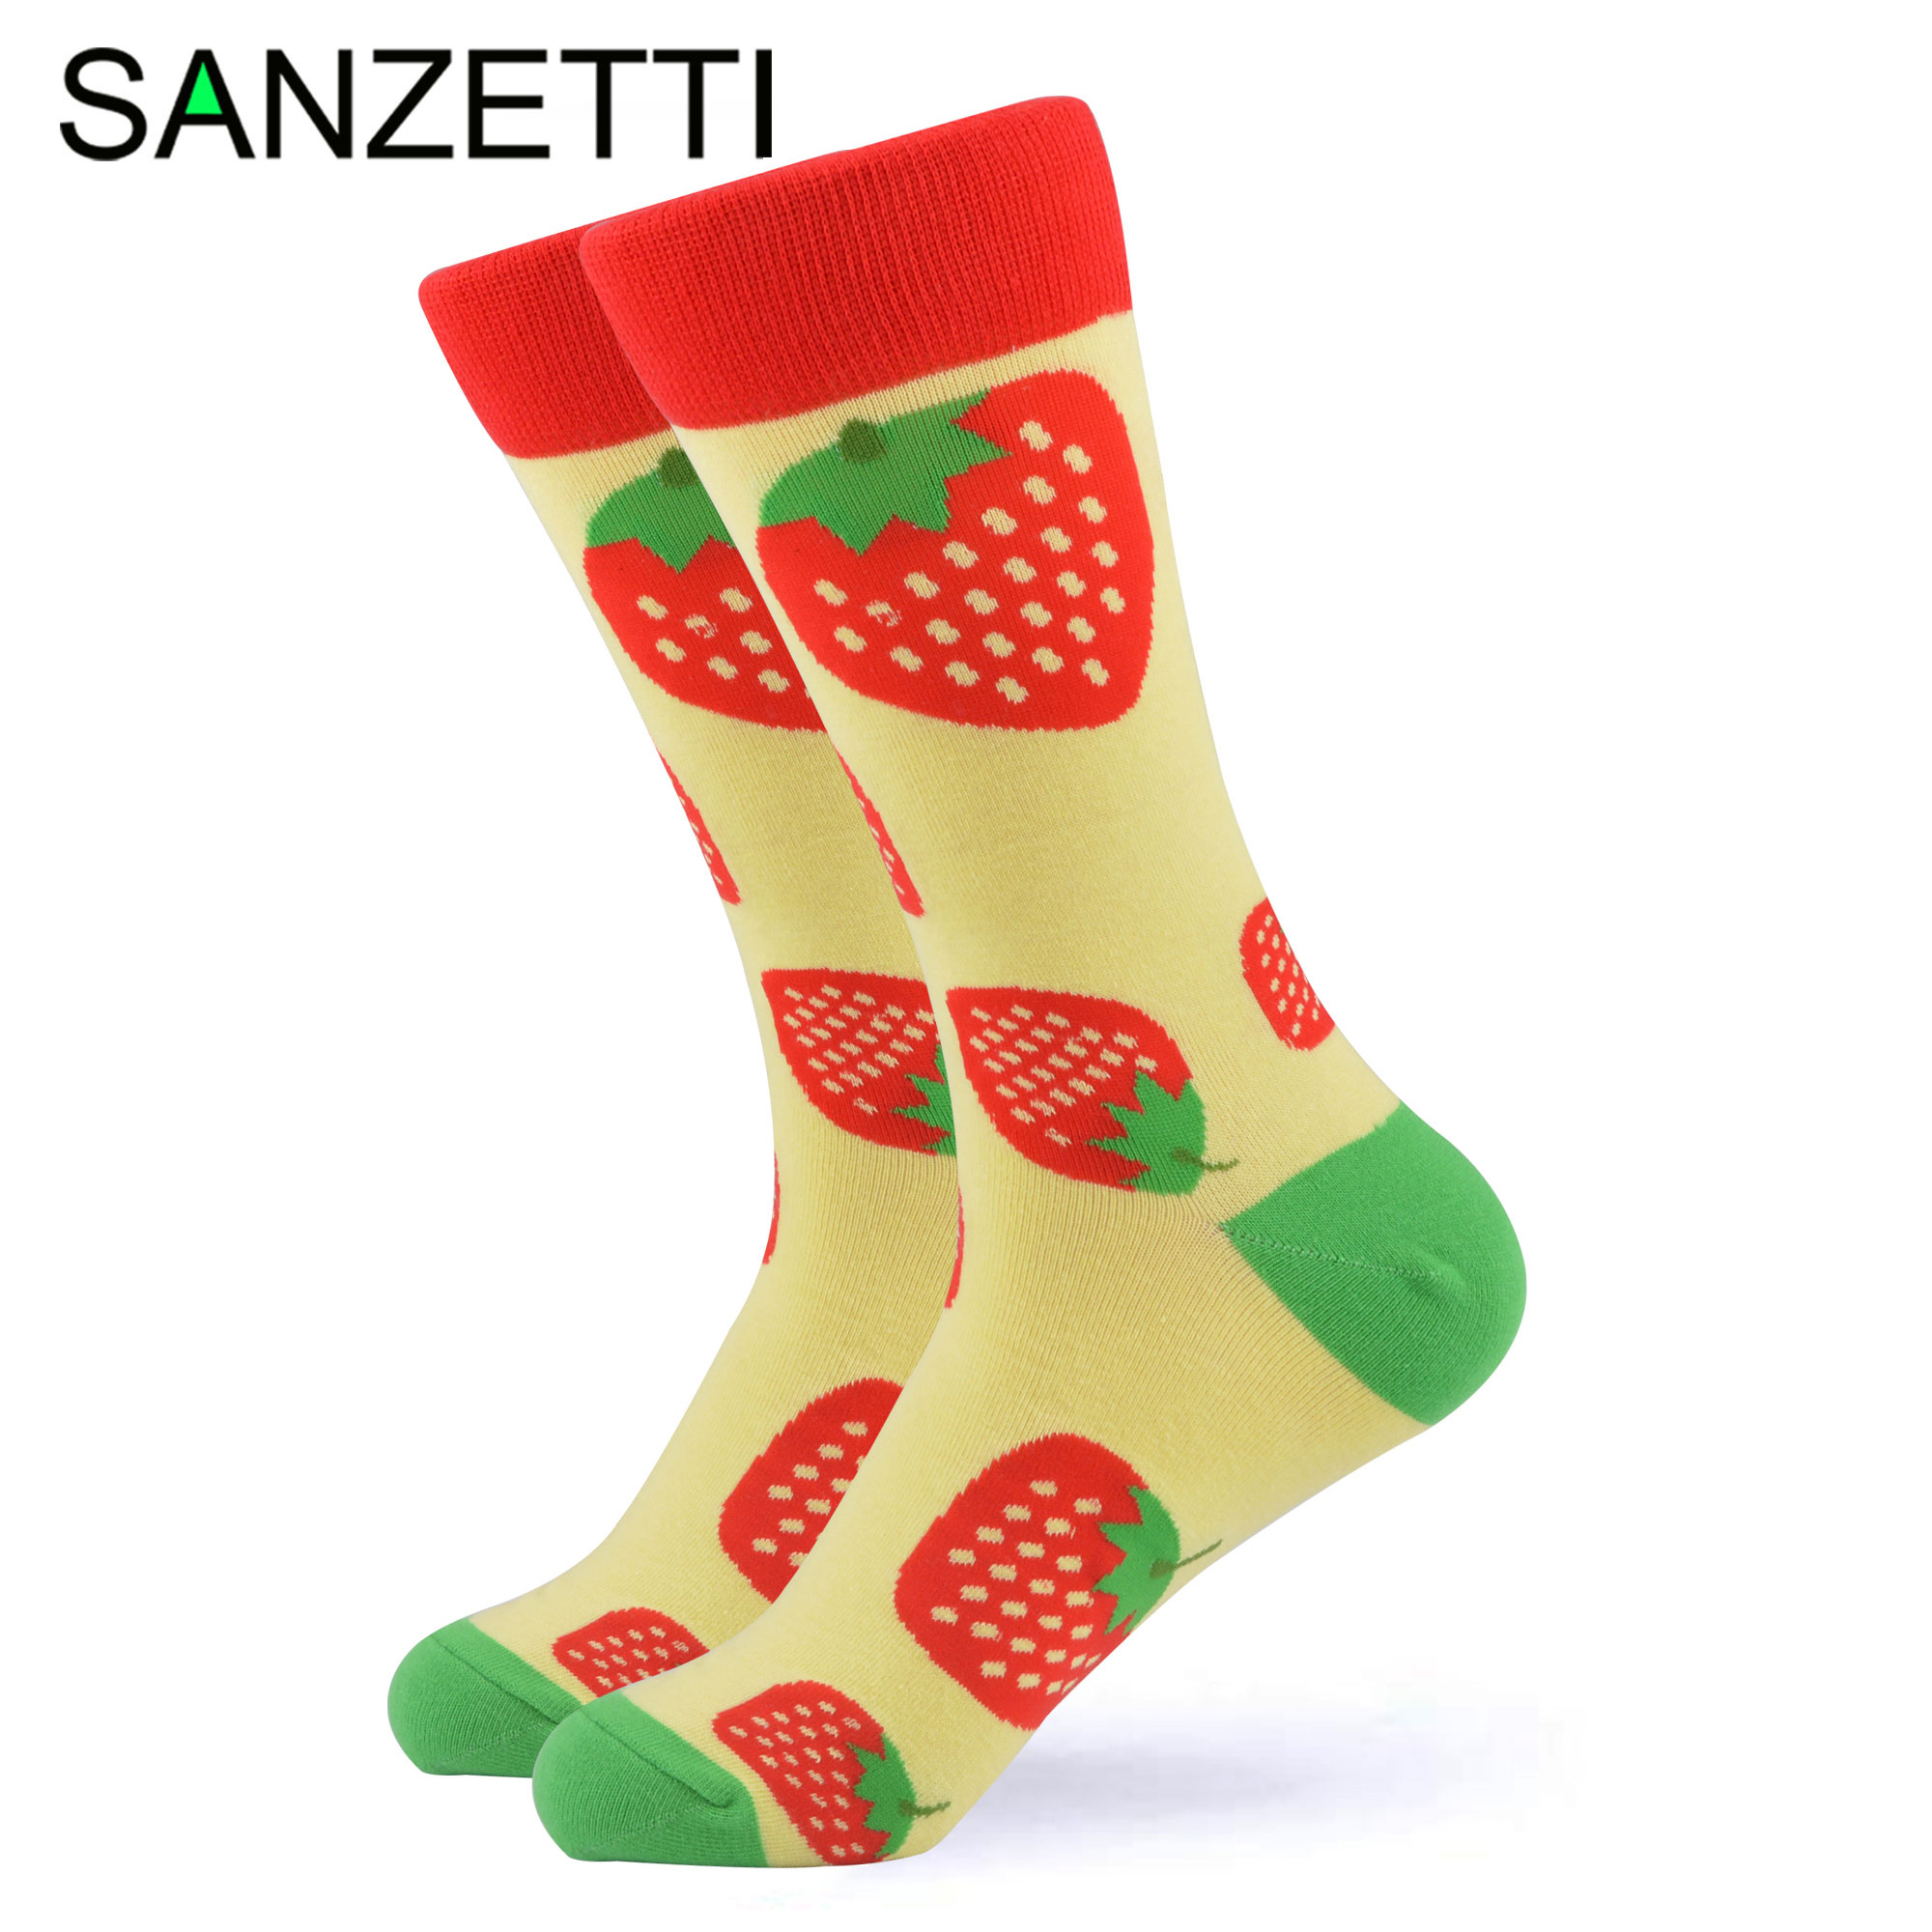 SANZETTI 1 Pair 2020 New Colorful Bright Women Socks Novelty Cute Female Combed Cotton Party Wine Gifts Create Dress Happy Socks